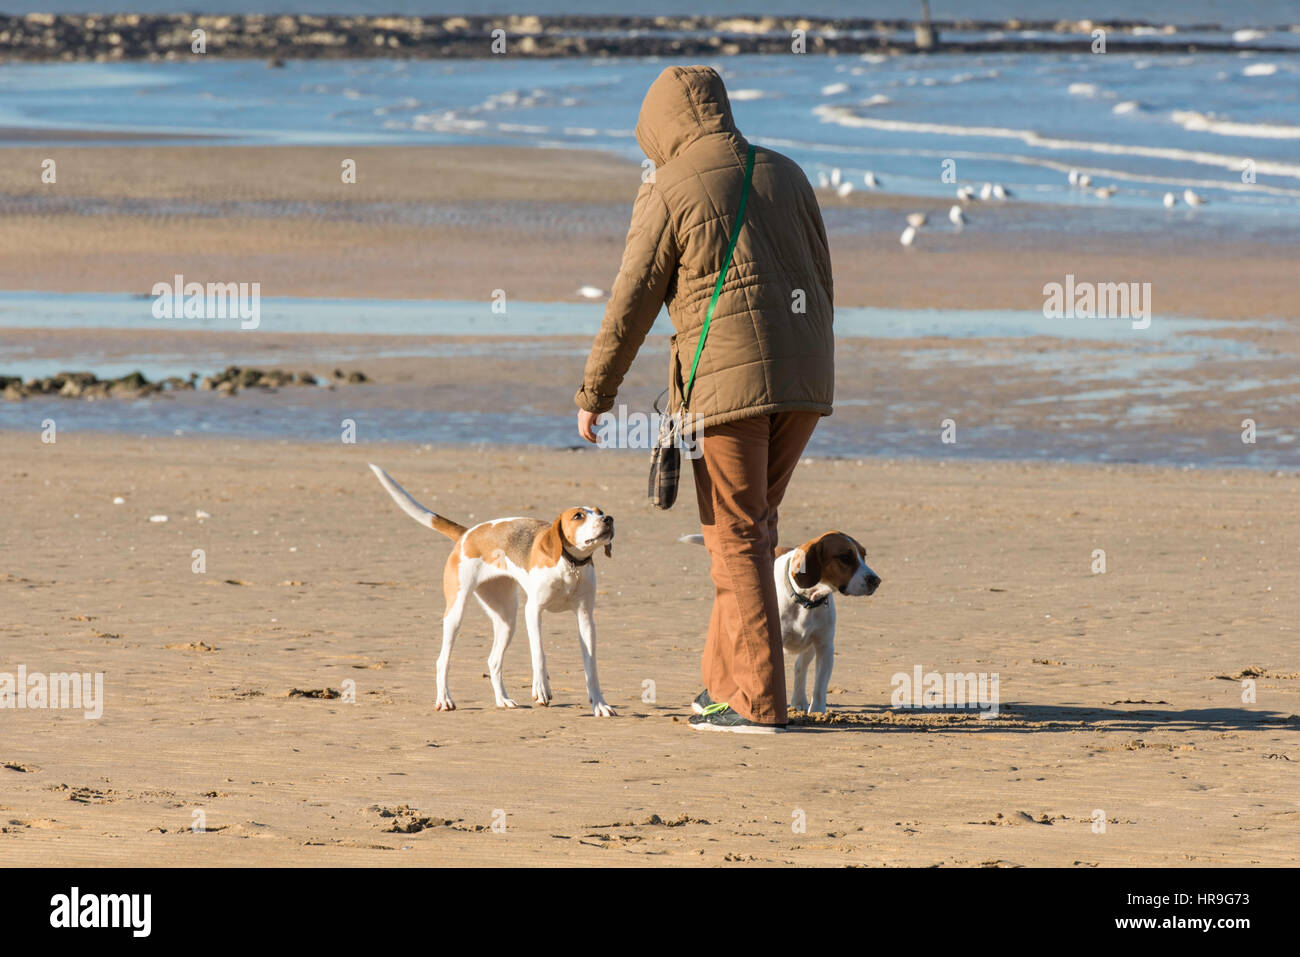 A man with his two dogs at the seaside in Margate, Kent. - Stock Image